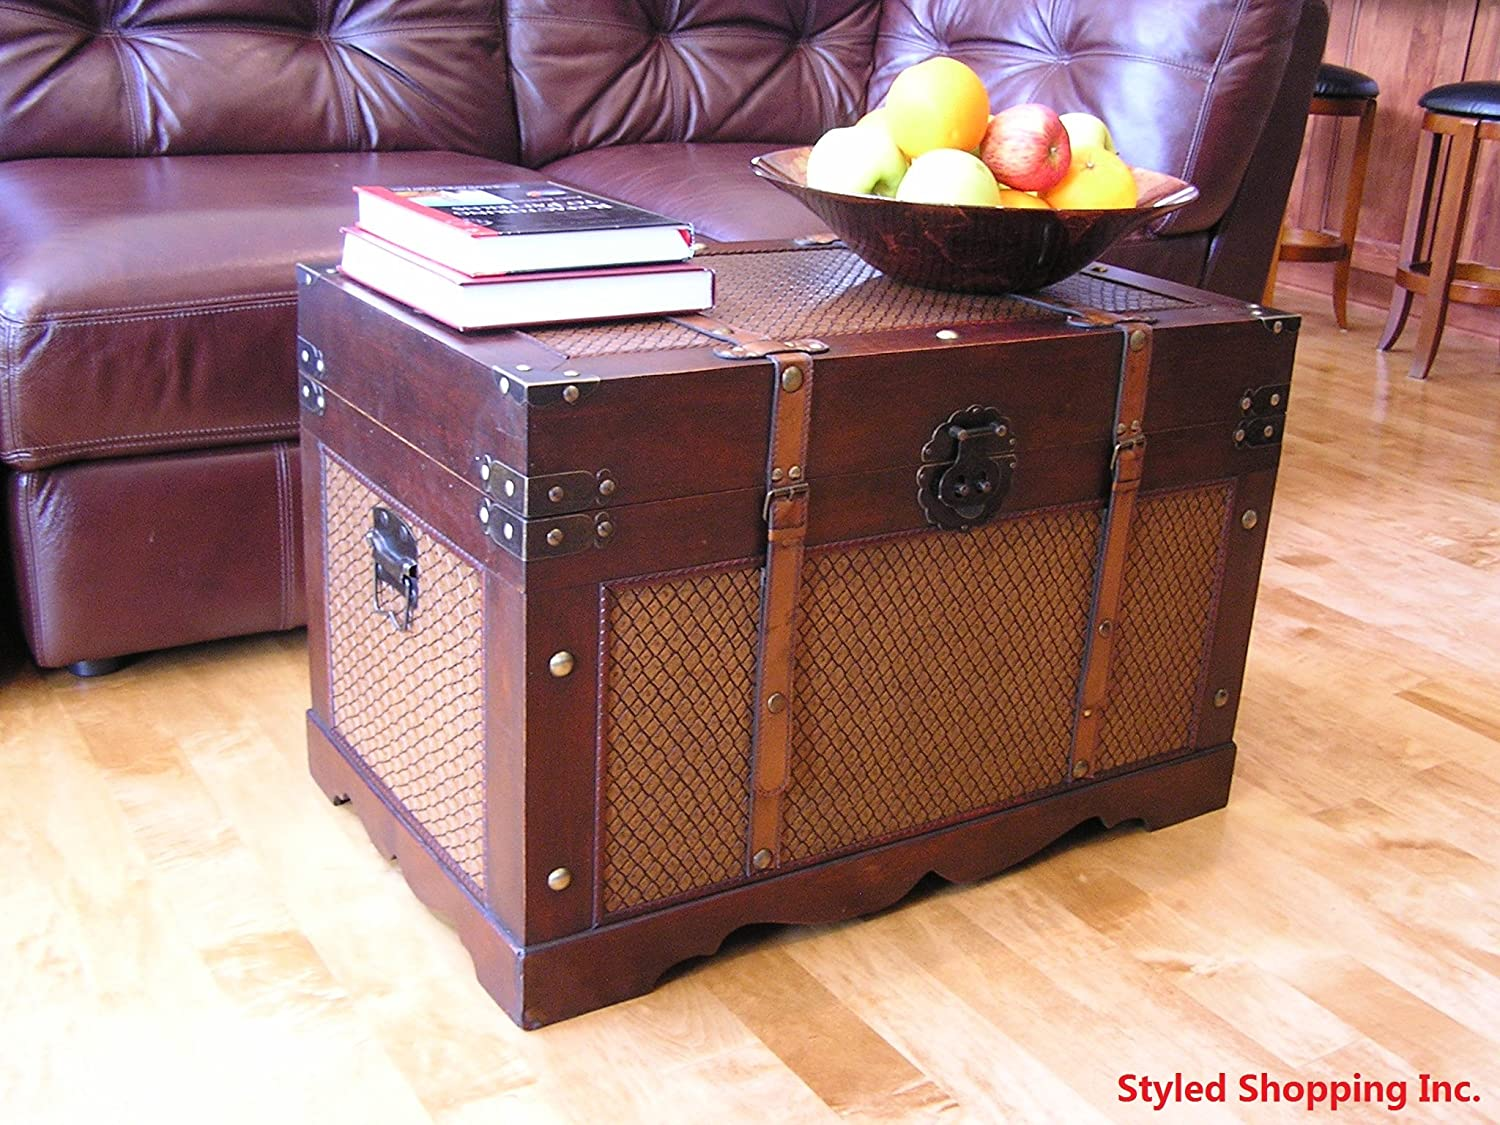 Brand-new Amazon.com: Boston Wood Chest Wooden Steamer Trunk - Large Trunk  TB48